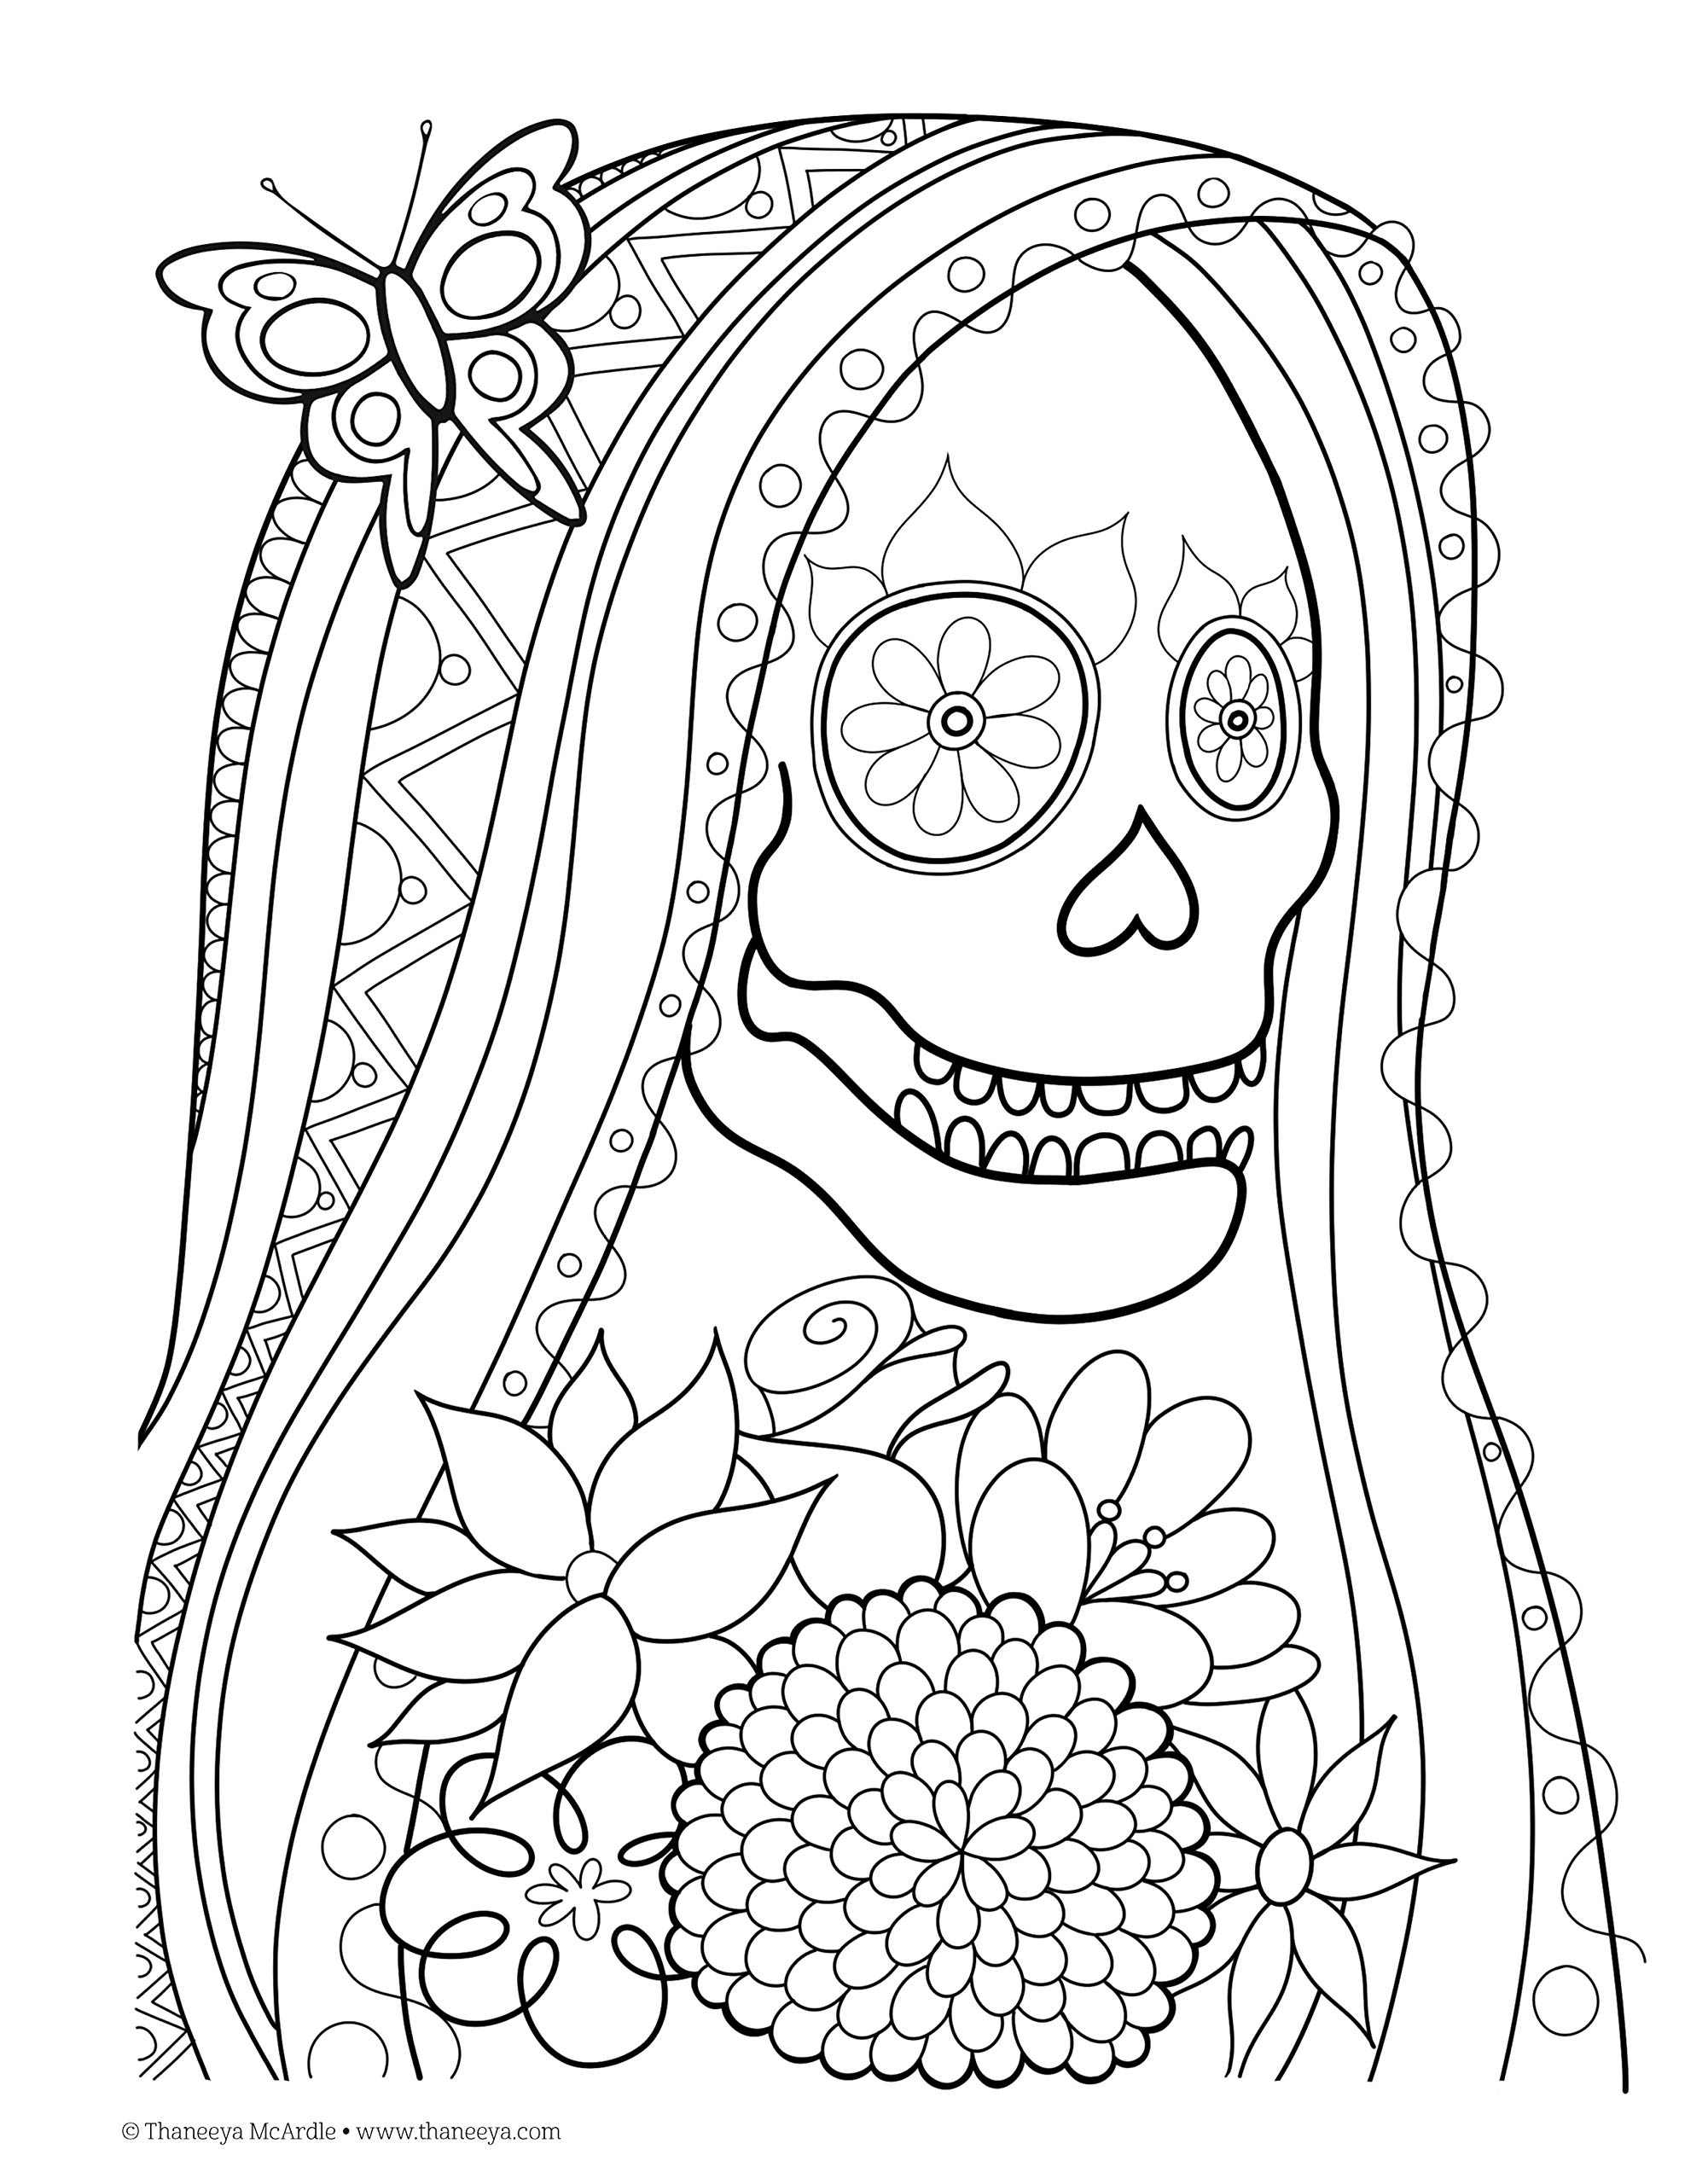 Amazon Com Day Of The Dead Coloring Book Coloring Is Fun Design Originals 30 Beginner Friendly Creative Art Activities With Sugar Skulls Extra Thick Perforated Paper Resists Bleed Through 8656116169982 Mcardle Thaneeya Books